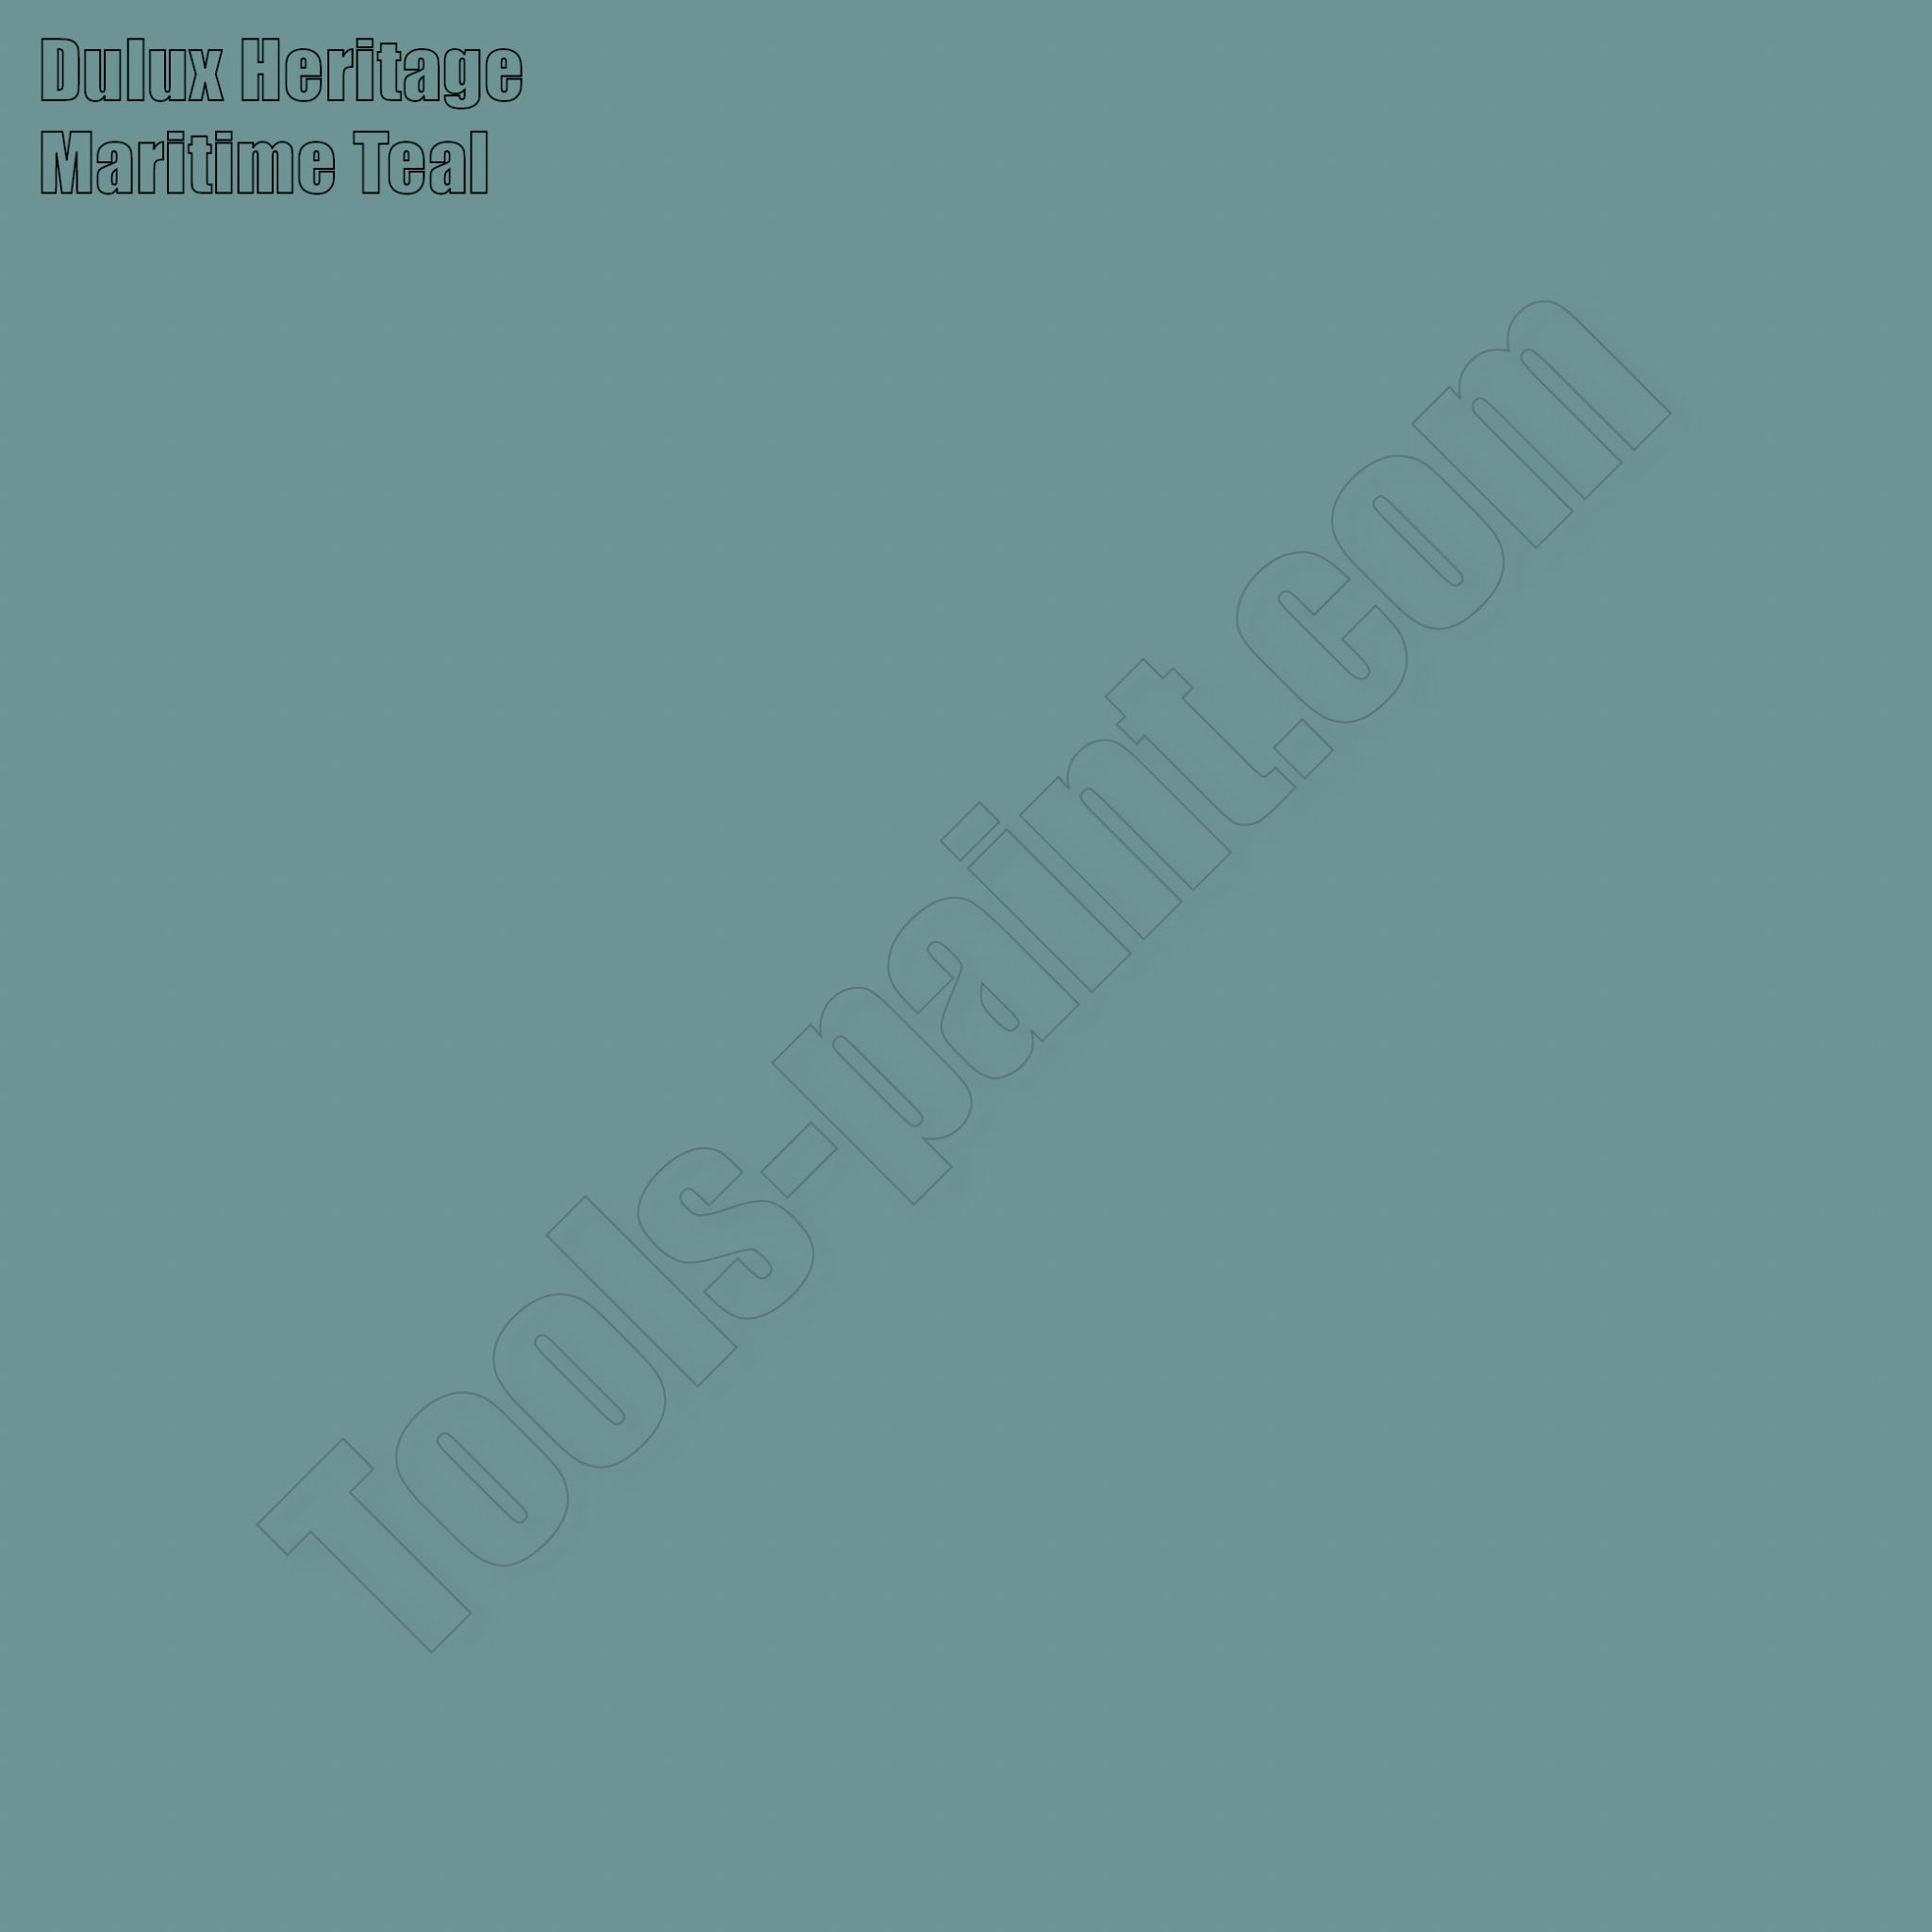 Dulux Heritage Maritime Teal